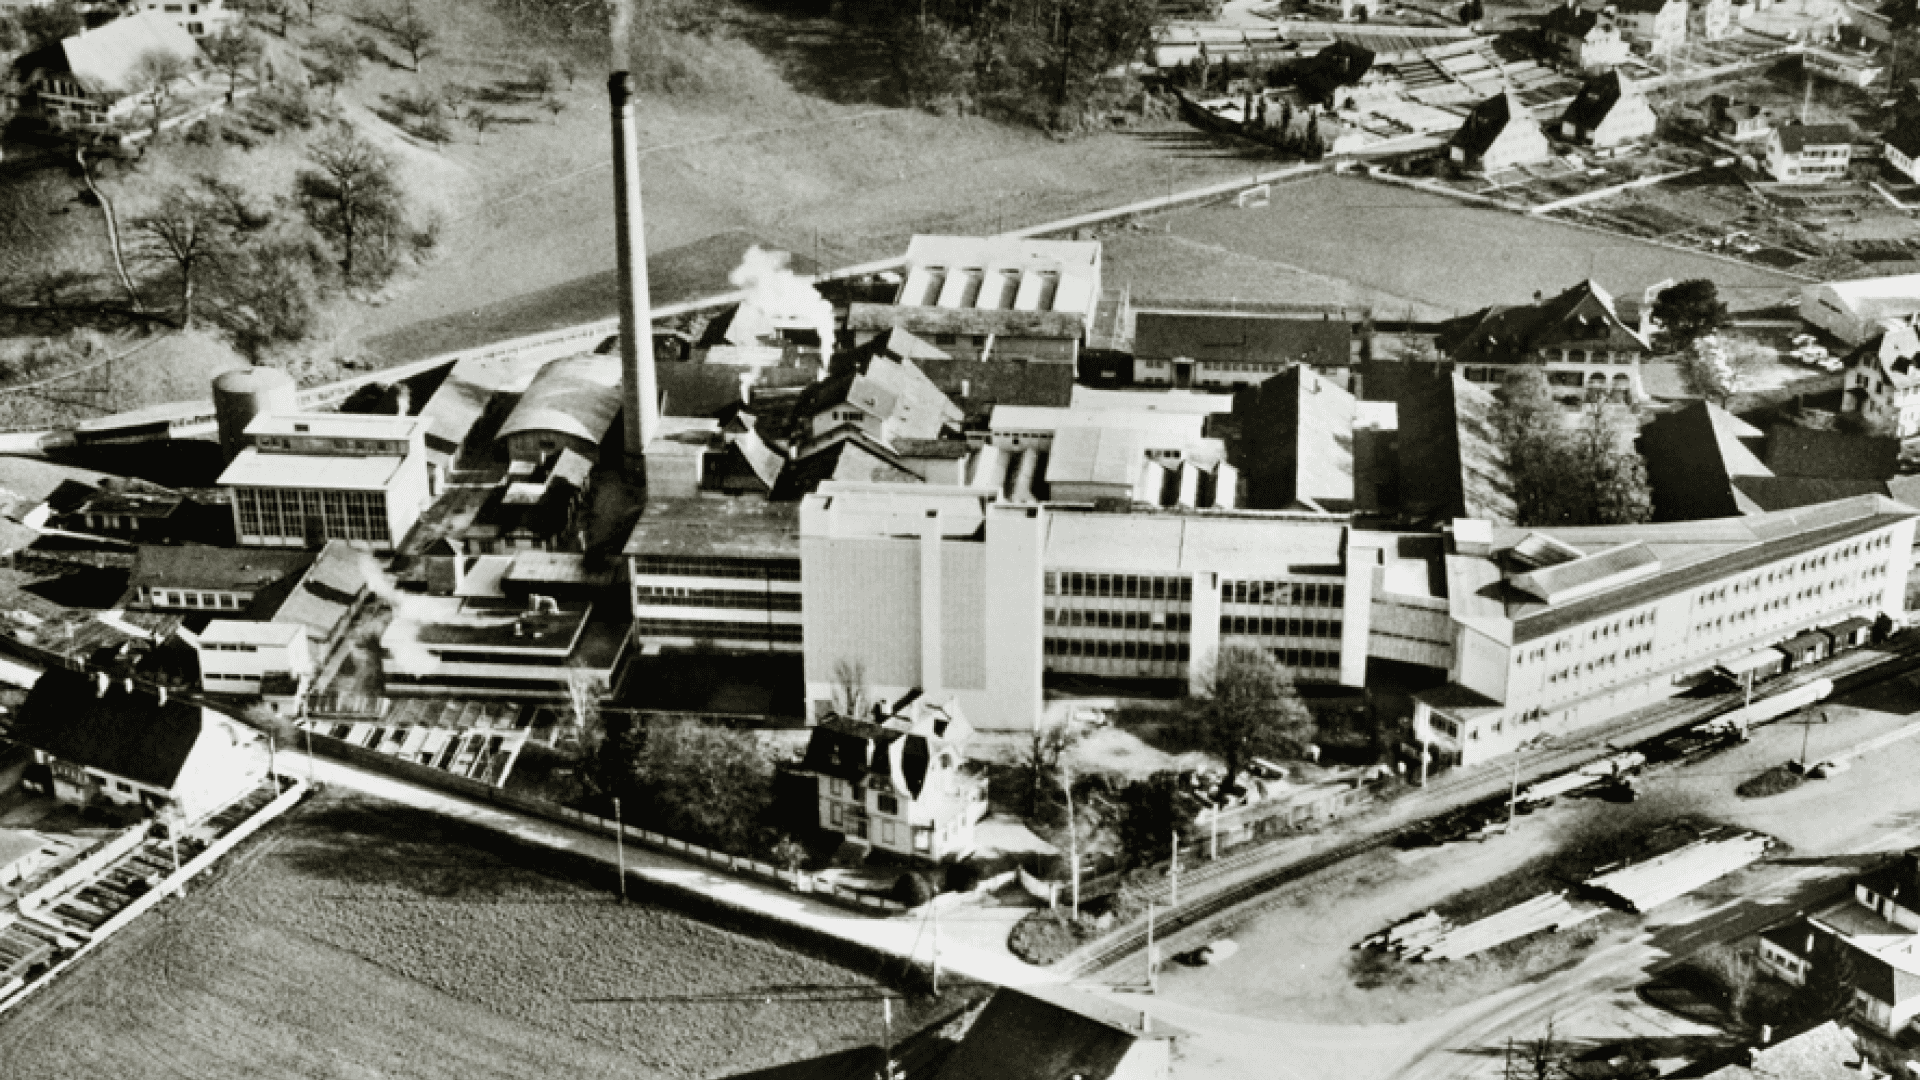 old Ovomaltine factory